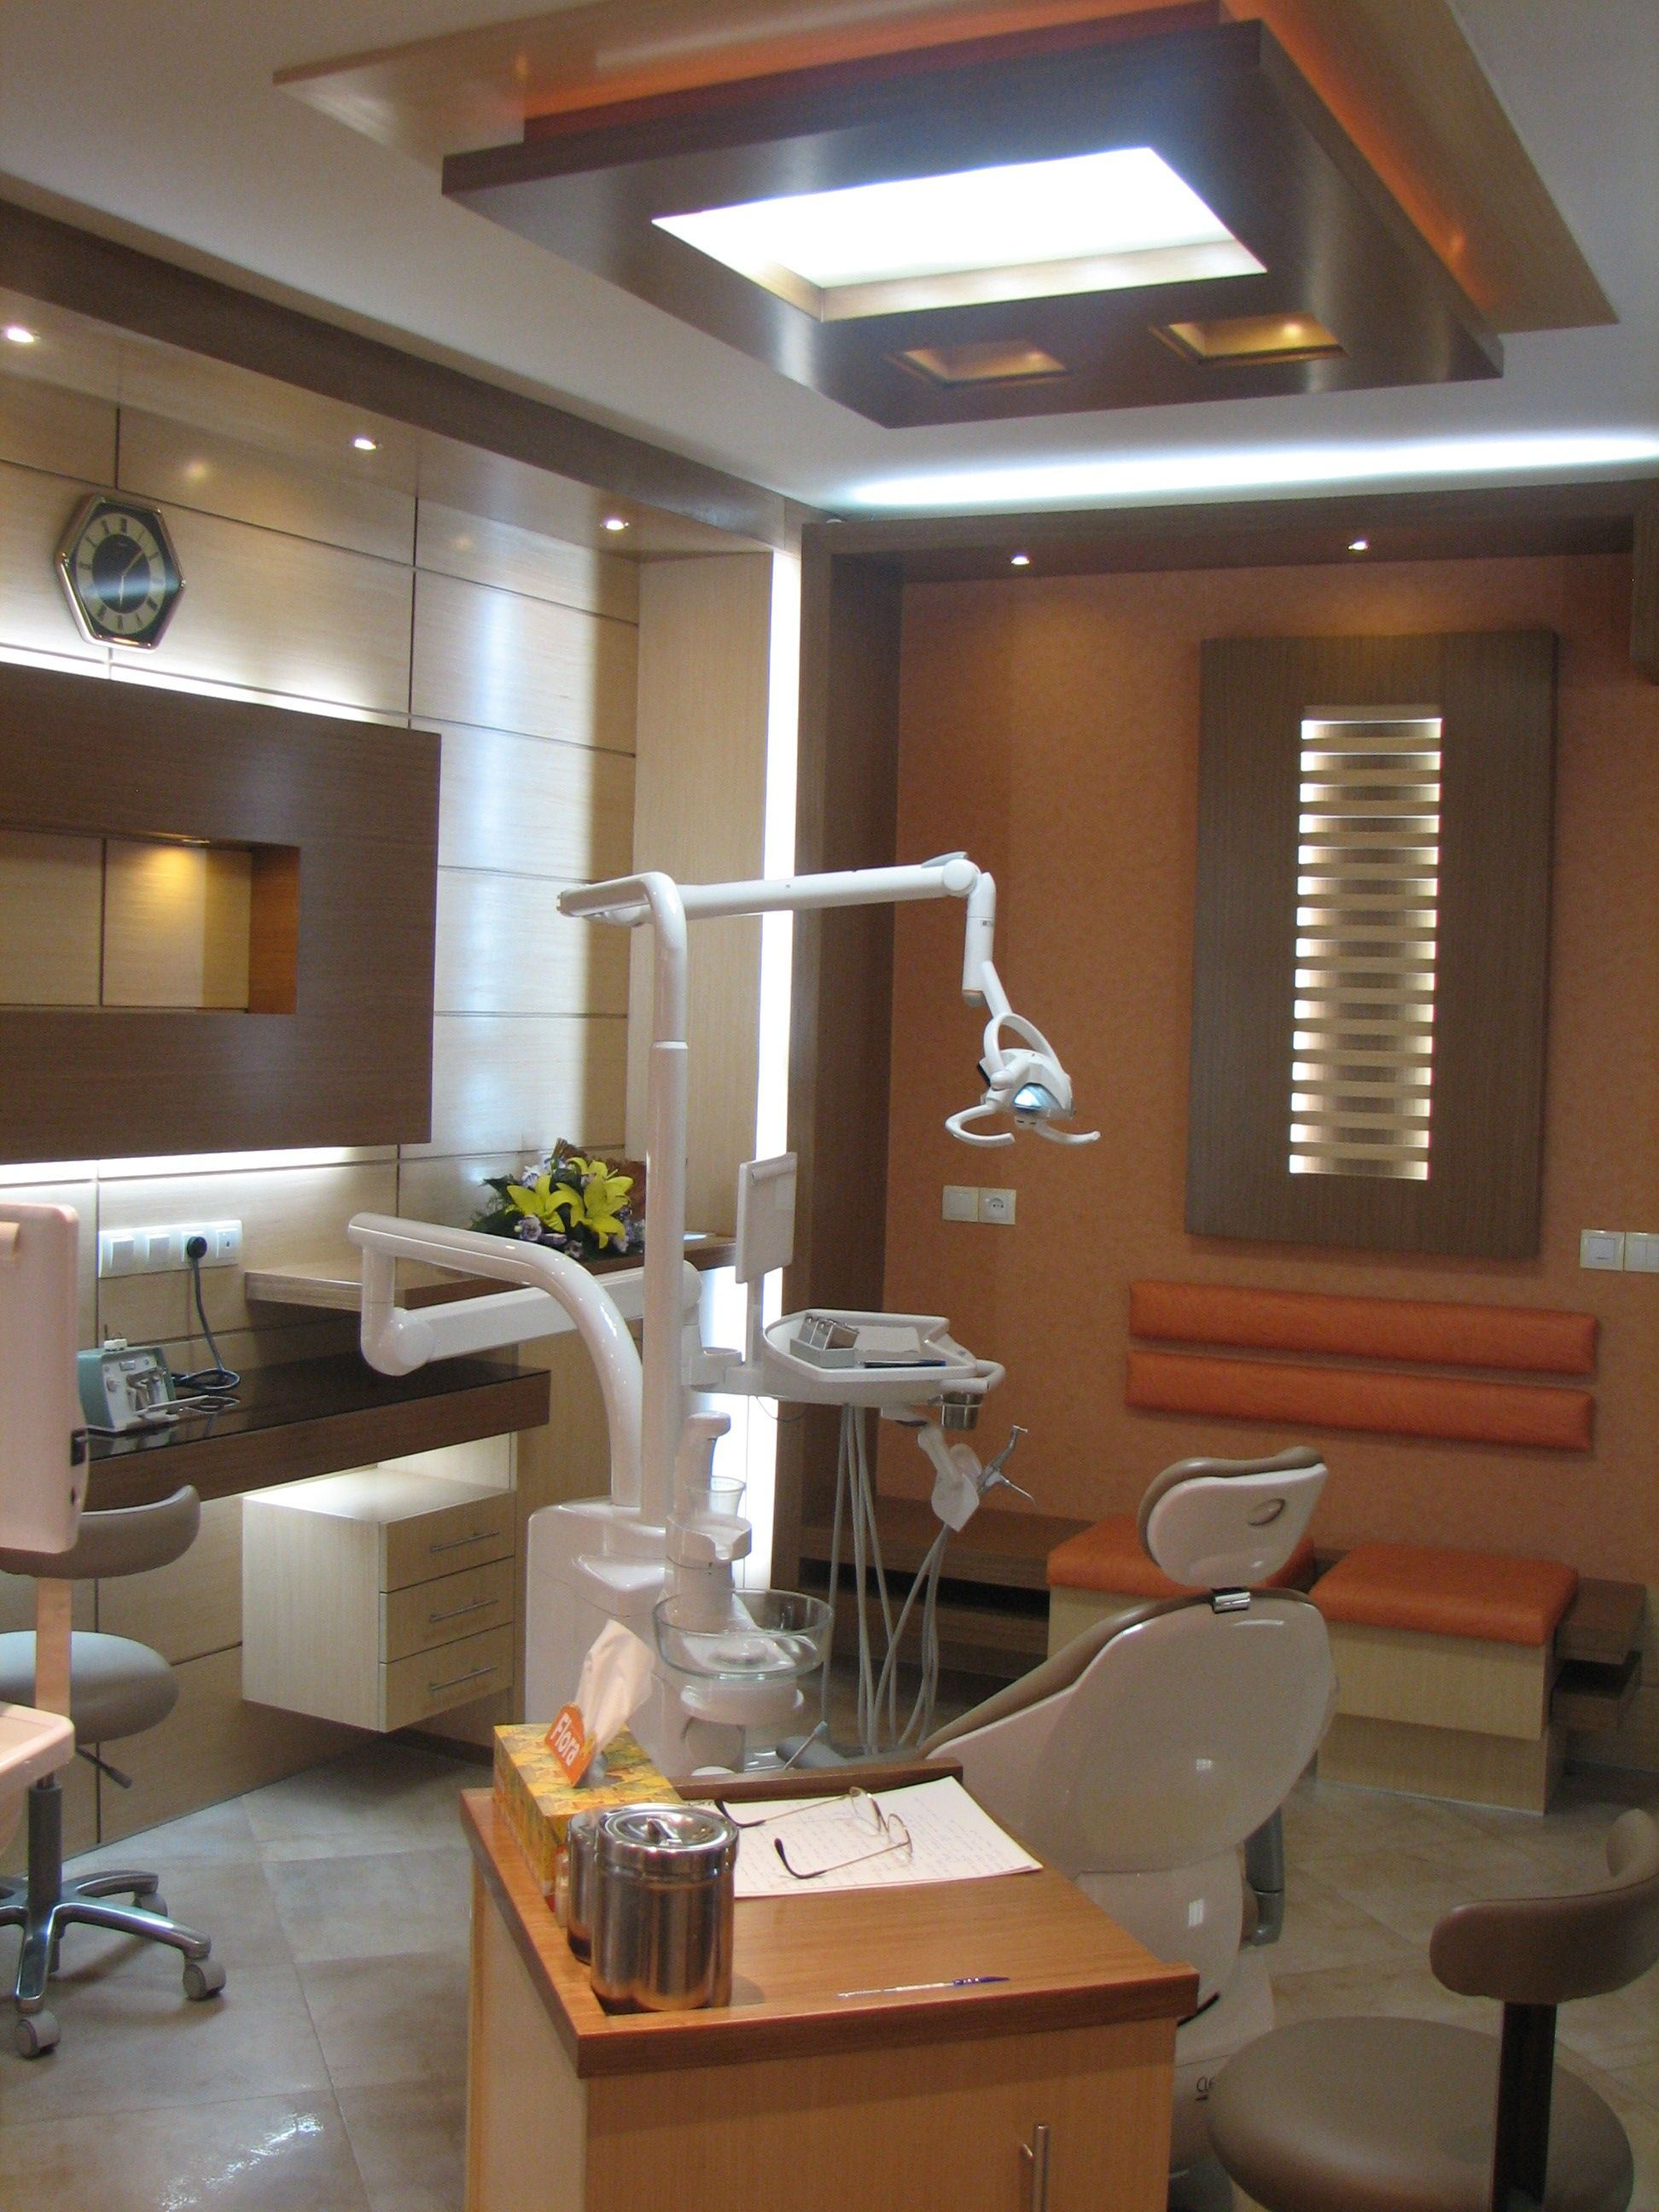 Interior design dental clinic mehrzad rafeei for Dental office interior design